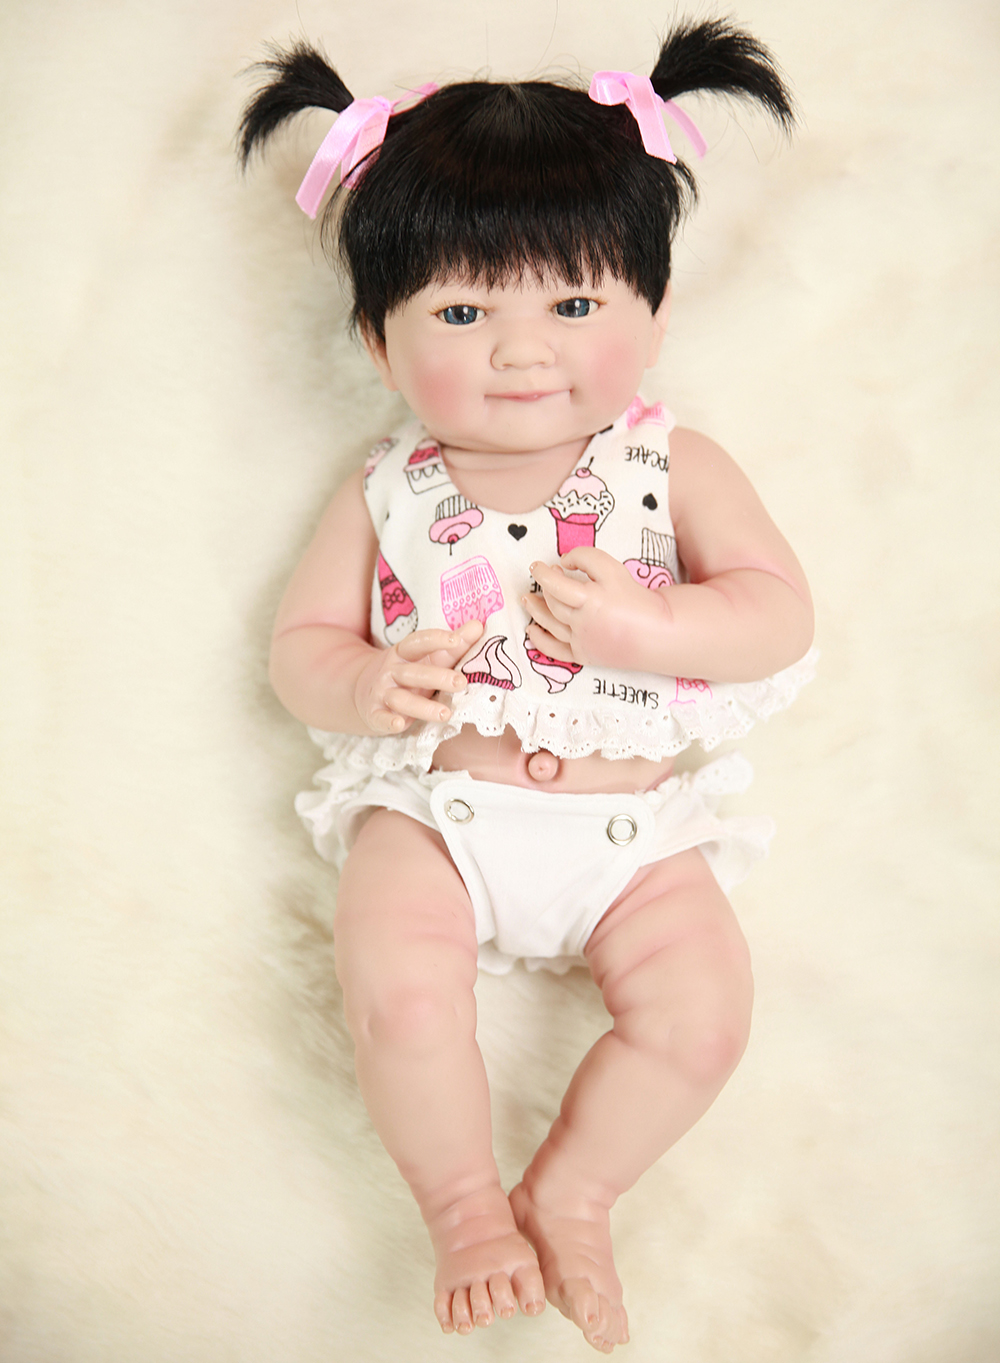 Adorable Can in Water Doll Full Body Silicone Reborn Baby Girl Dolls for Sale The Best Girls Boys Christmas Birthday Gifts the best best baby